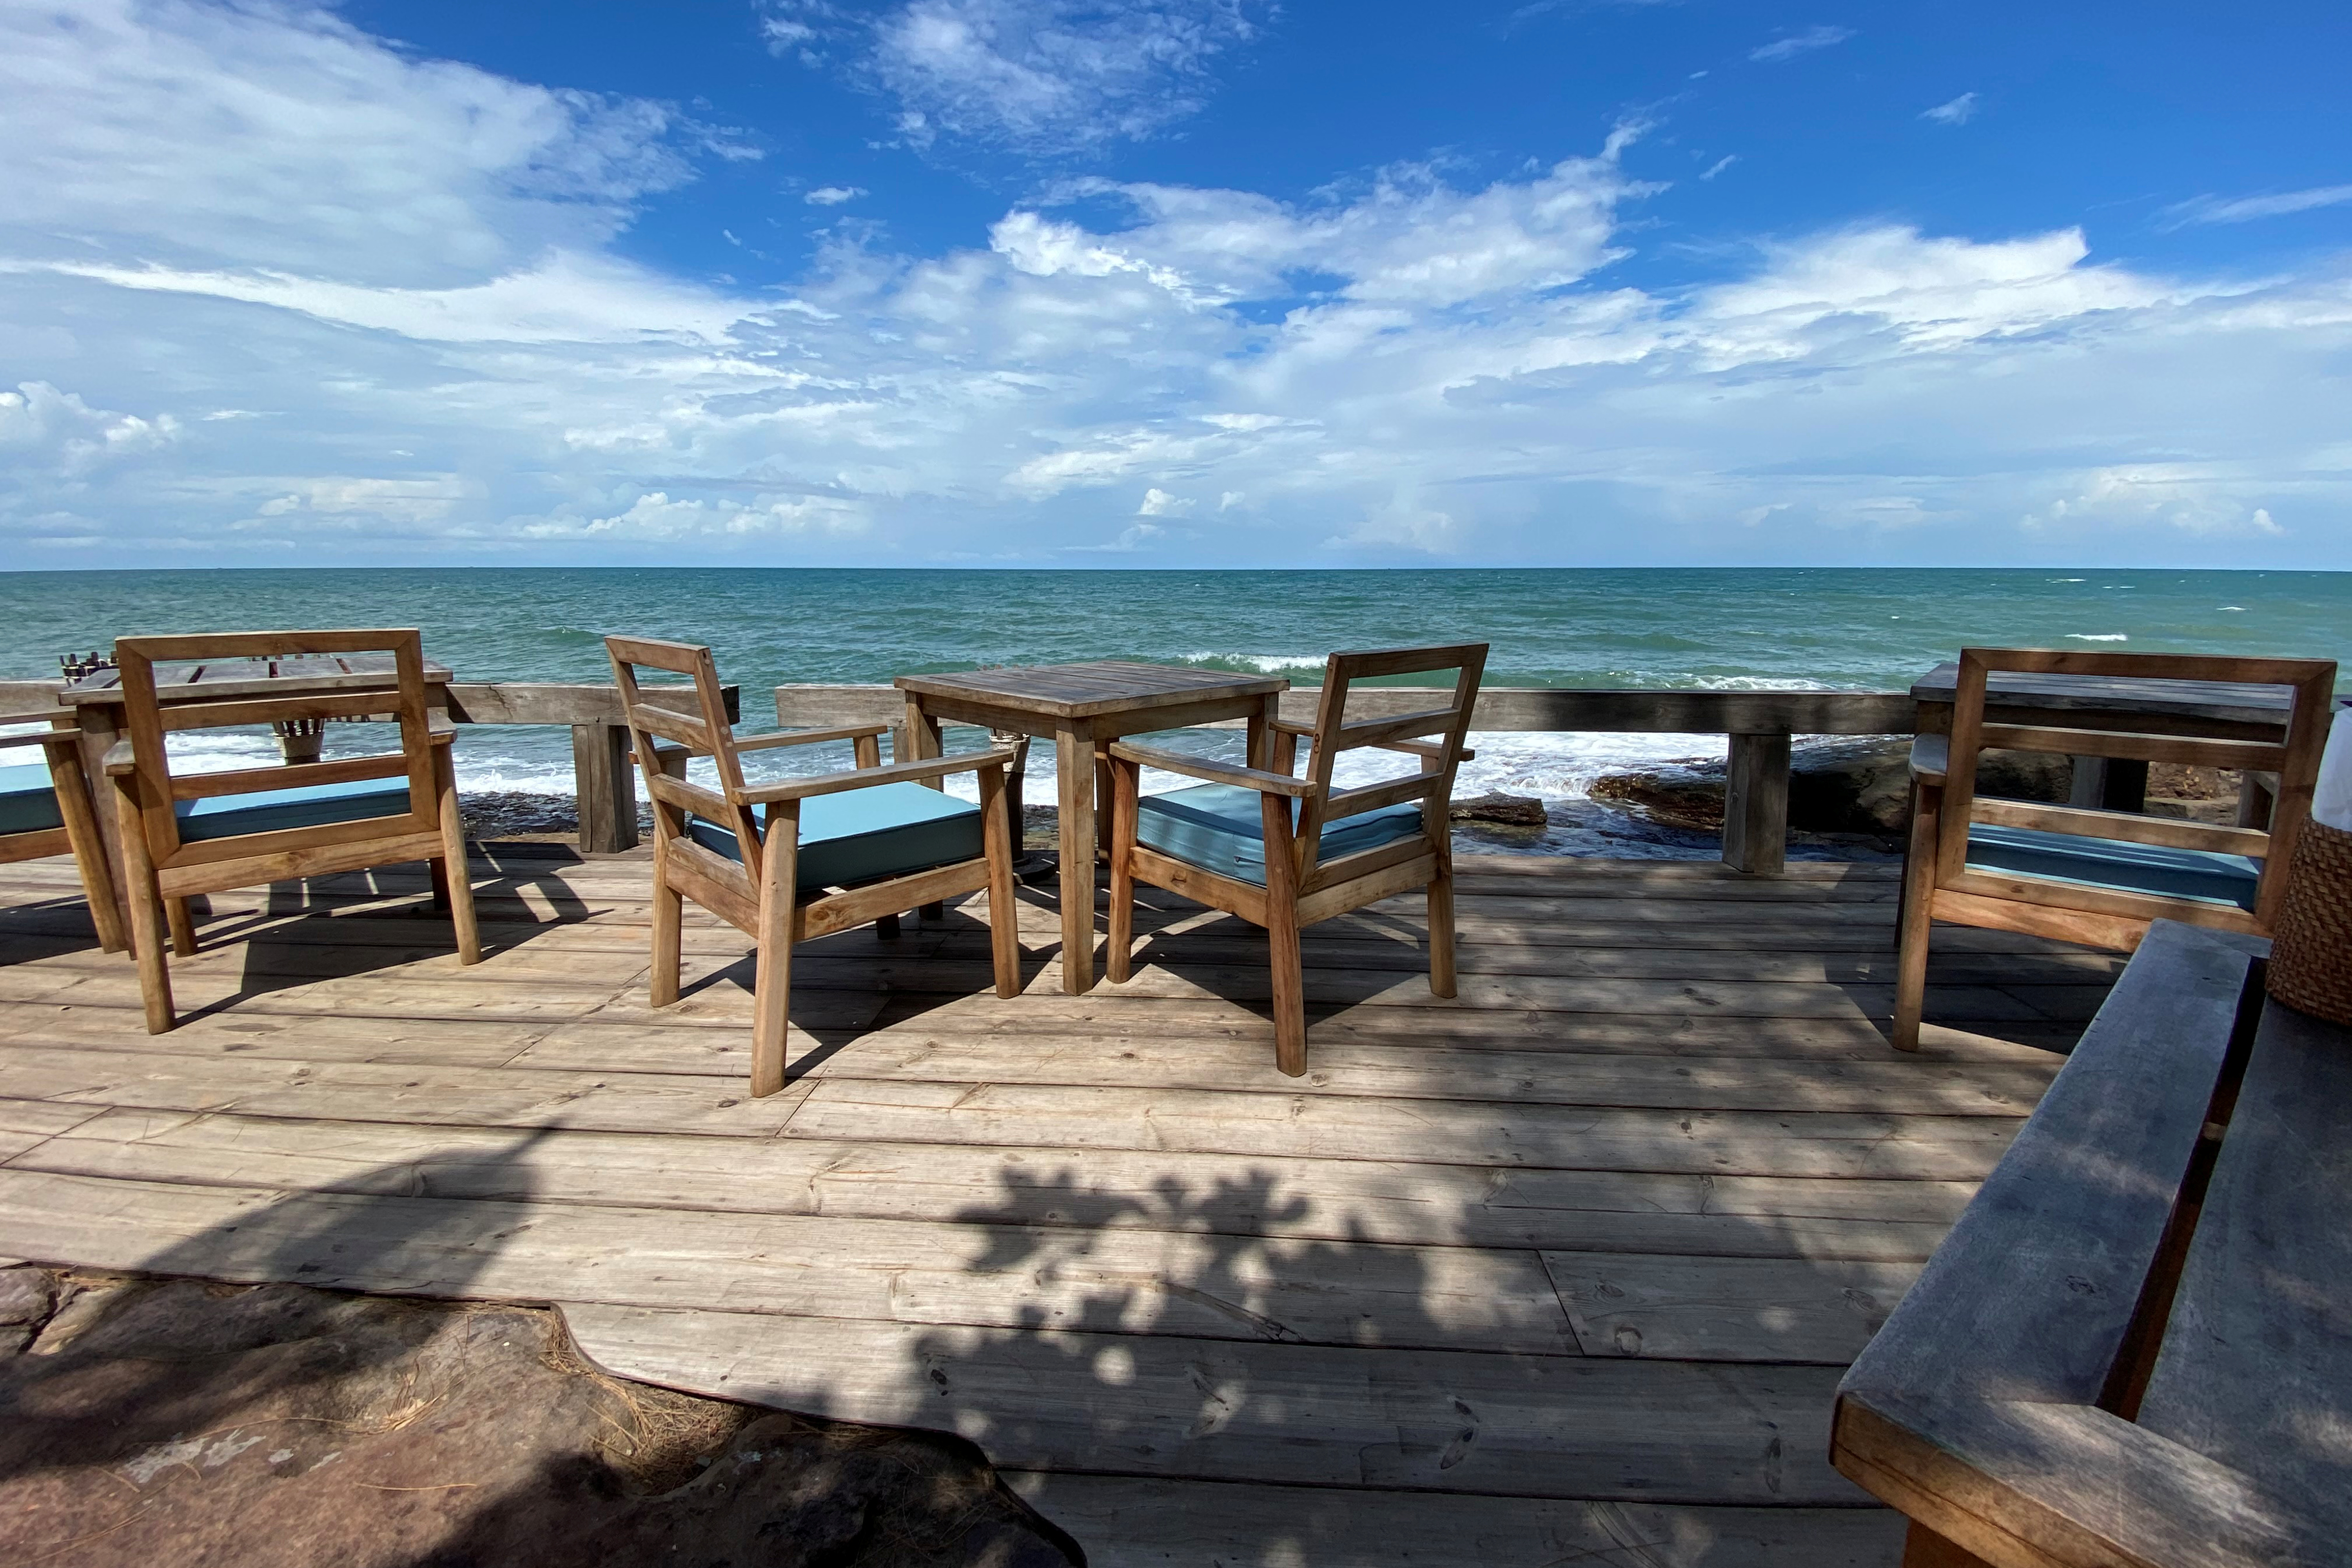 Views from a beachside restaurant are seen at the Mango Bay resort in Phu Quoc island, Vietnam, June 13, 2020. REUTERS/James Pearson